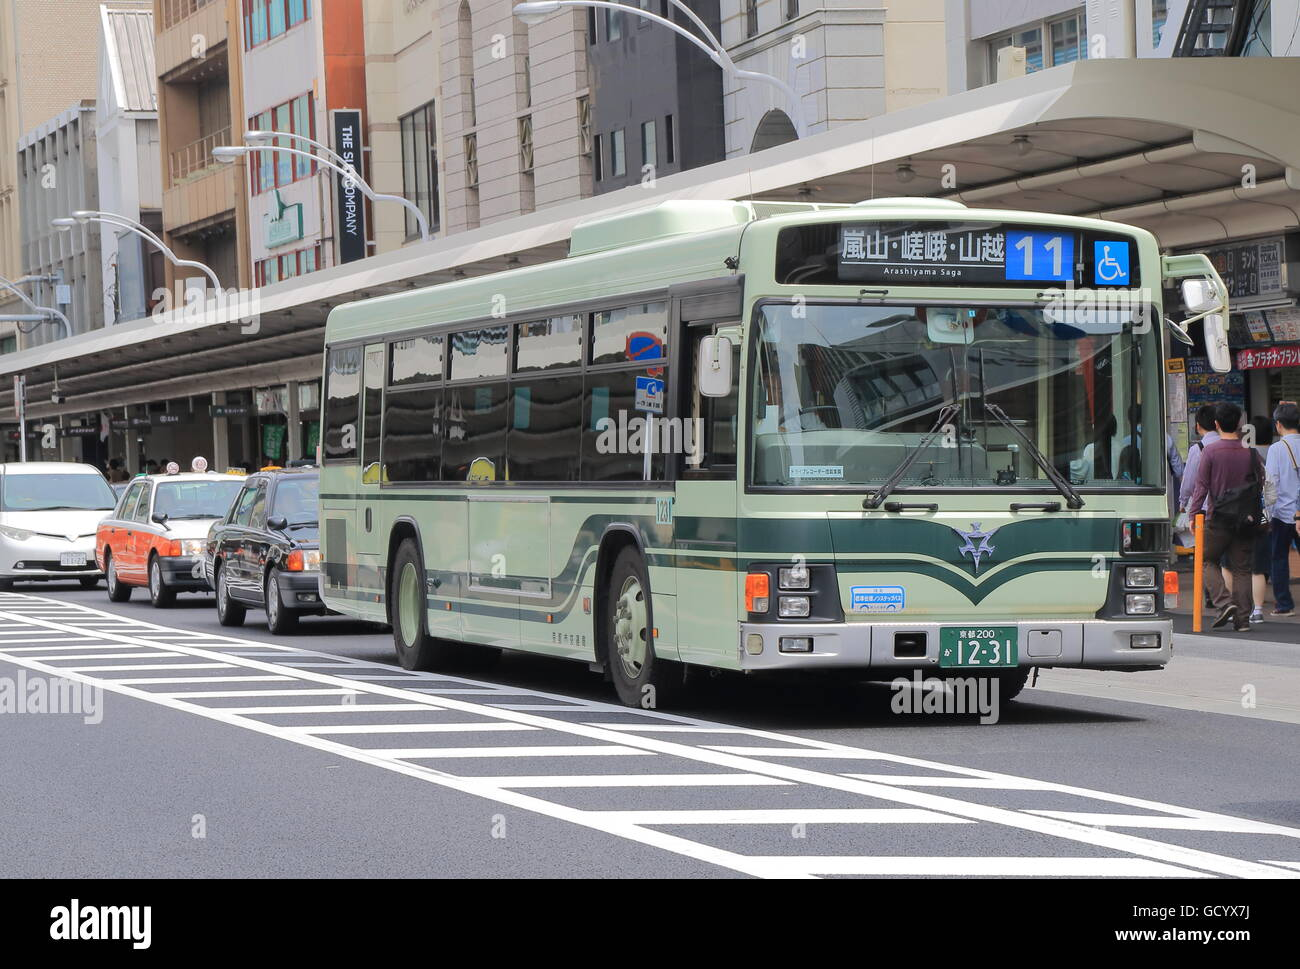 Kyoto City bus on Shijyo street in Kyoto Japan. Stock Photo